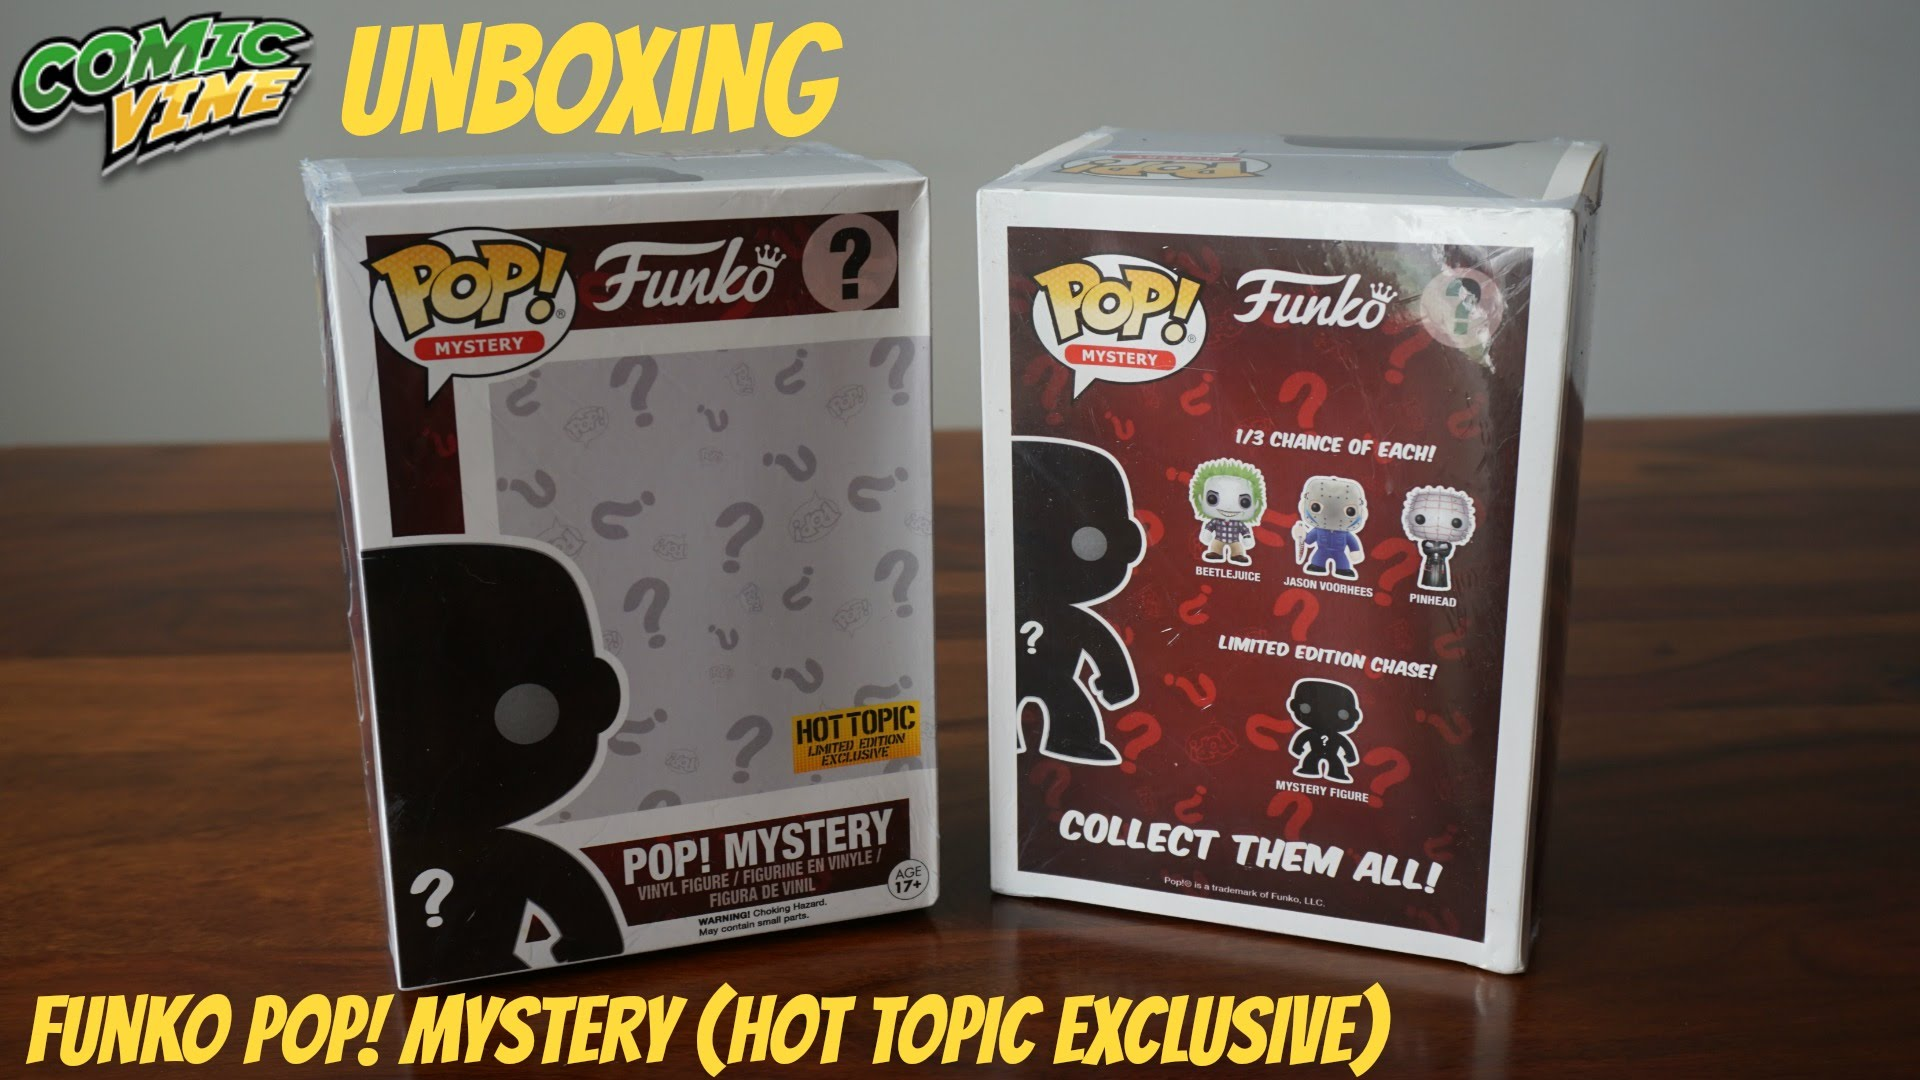 Unboxing: Funko Pop! Mystery (Hot Topic Exclusive)